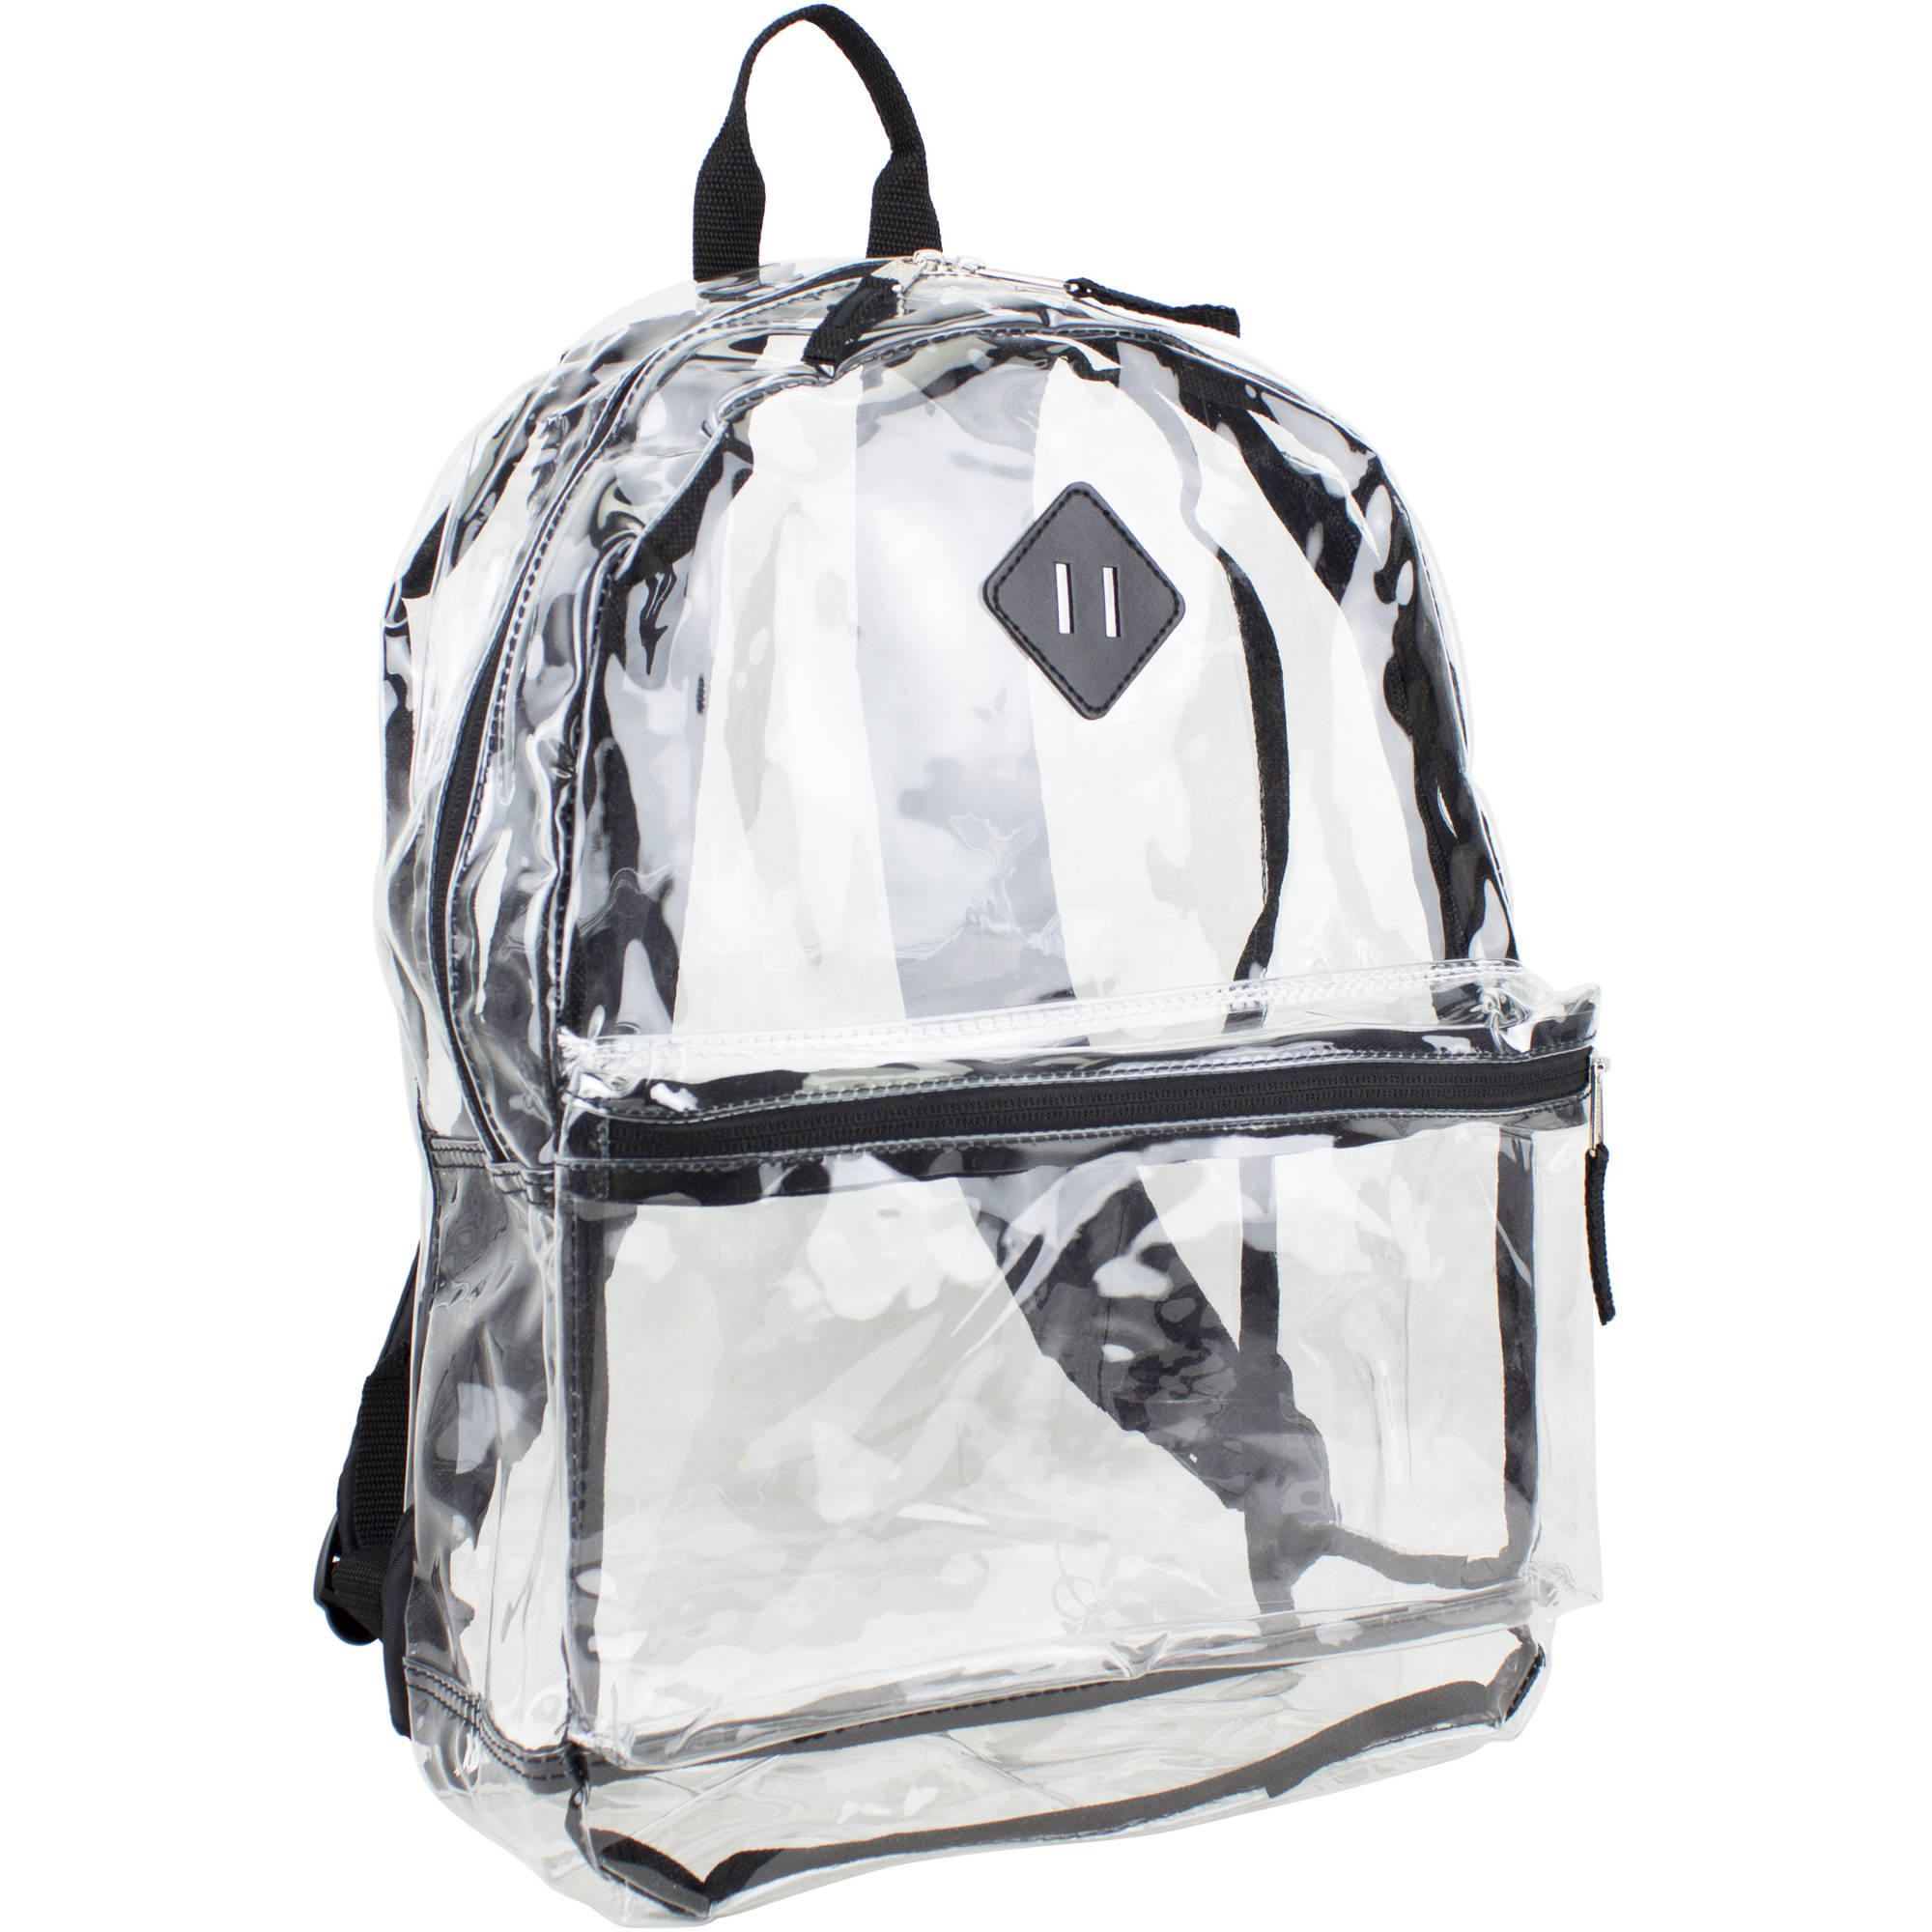 Eastsport Clear Backpack with Front Pocket, Adjustable Straps and Lash Tab